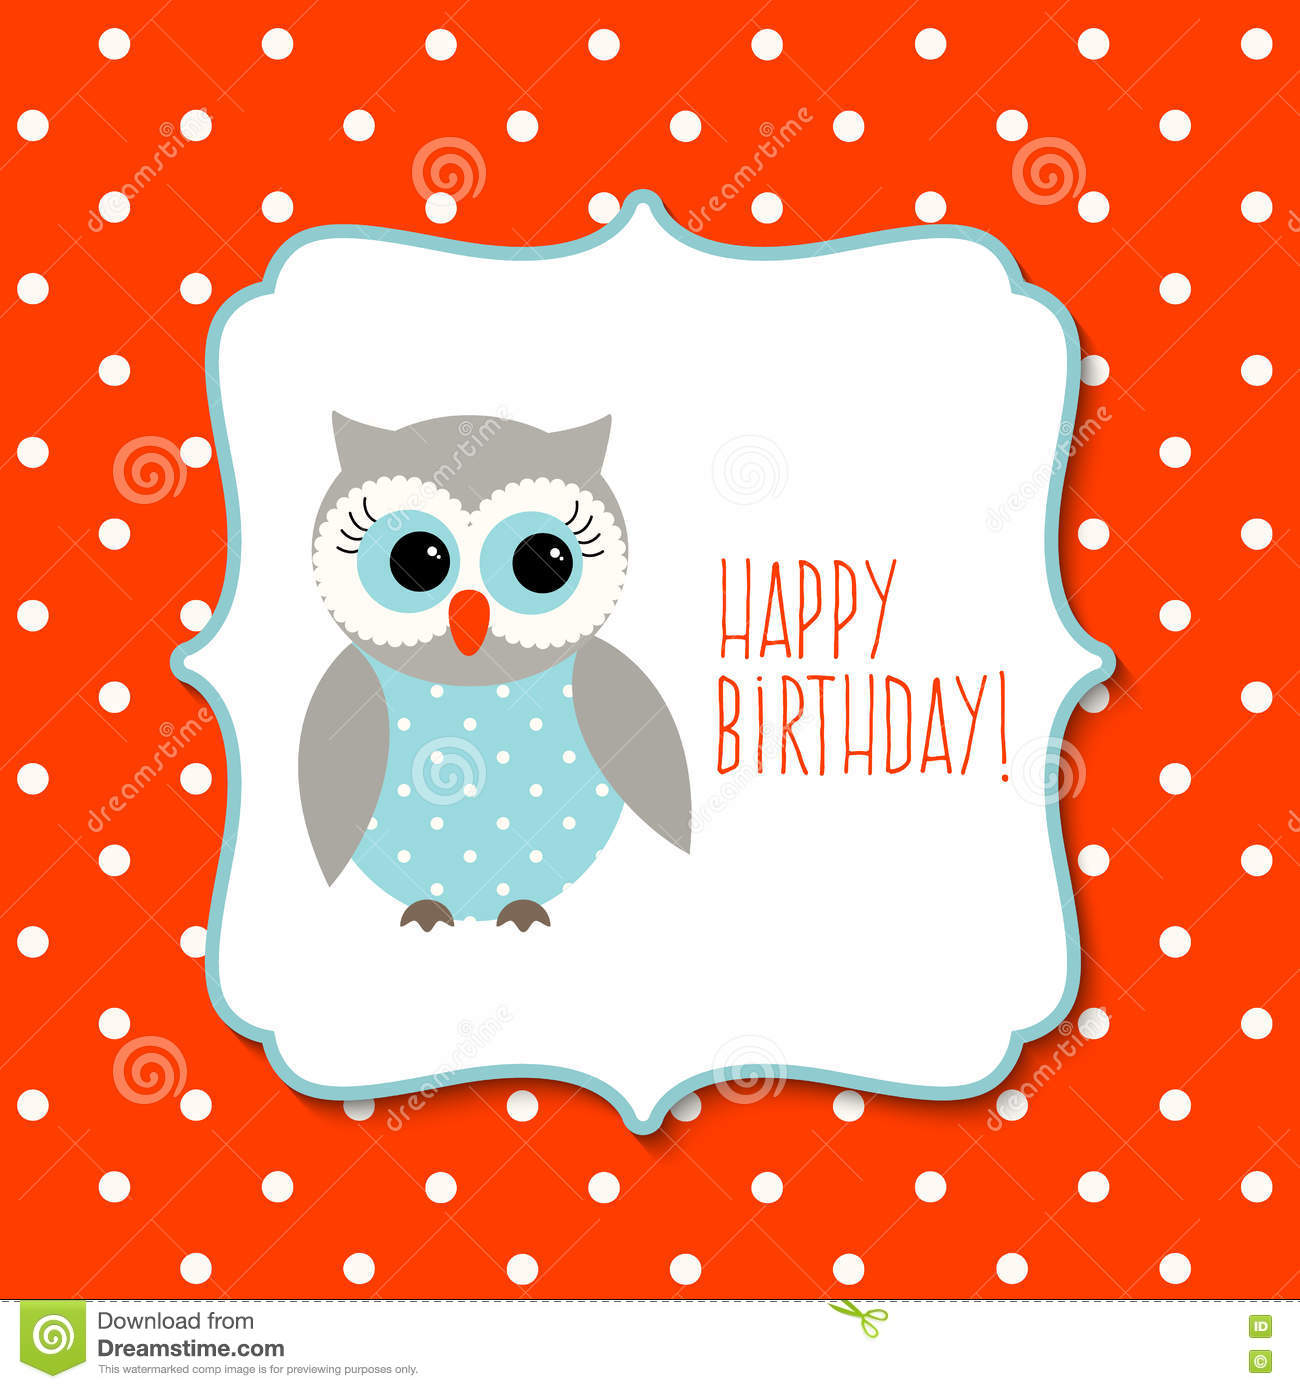 Birthday Greeting Card With Cute Owl On Polka Dot Background Stock